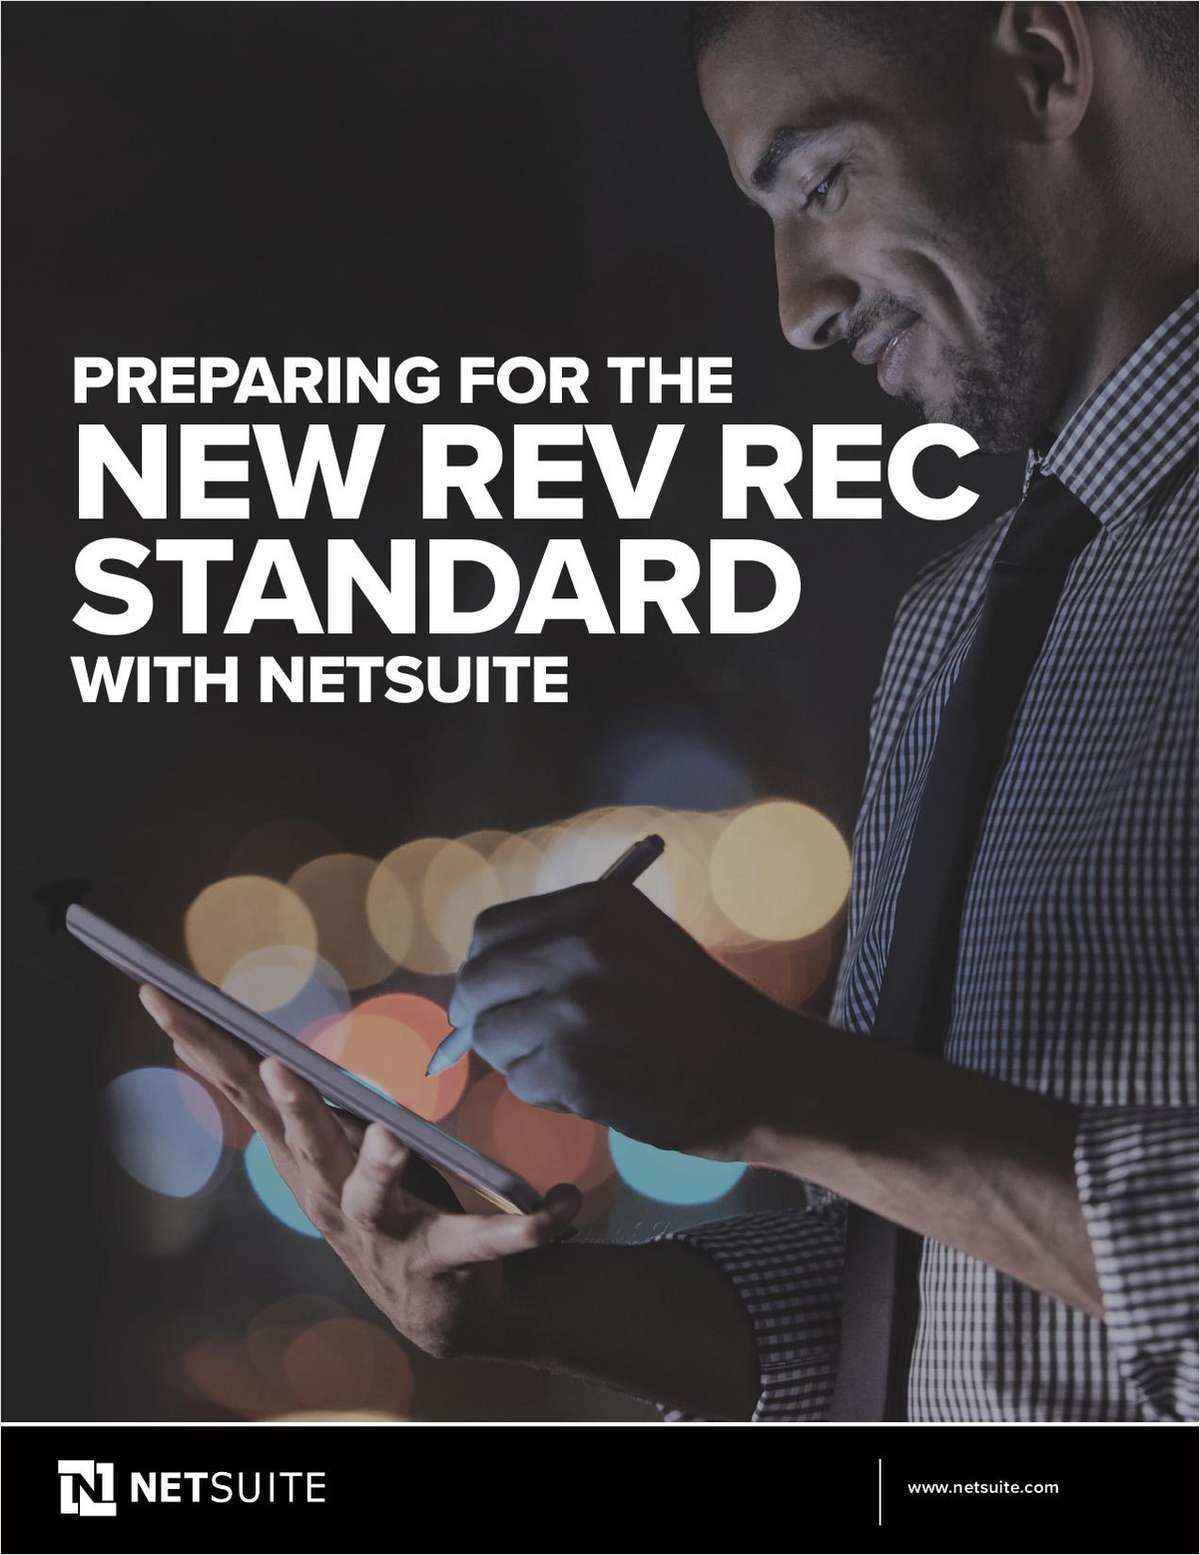 Preparing for the New Rev Rec Standard with NetSuite